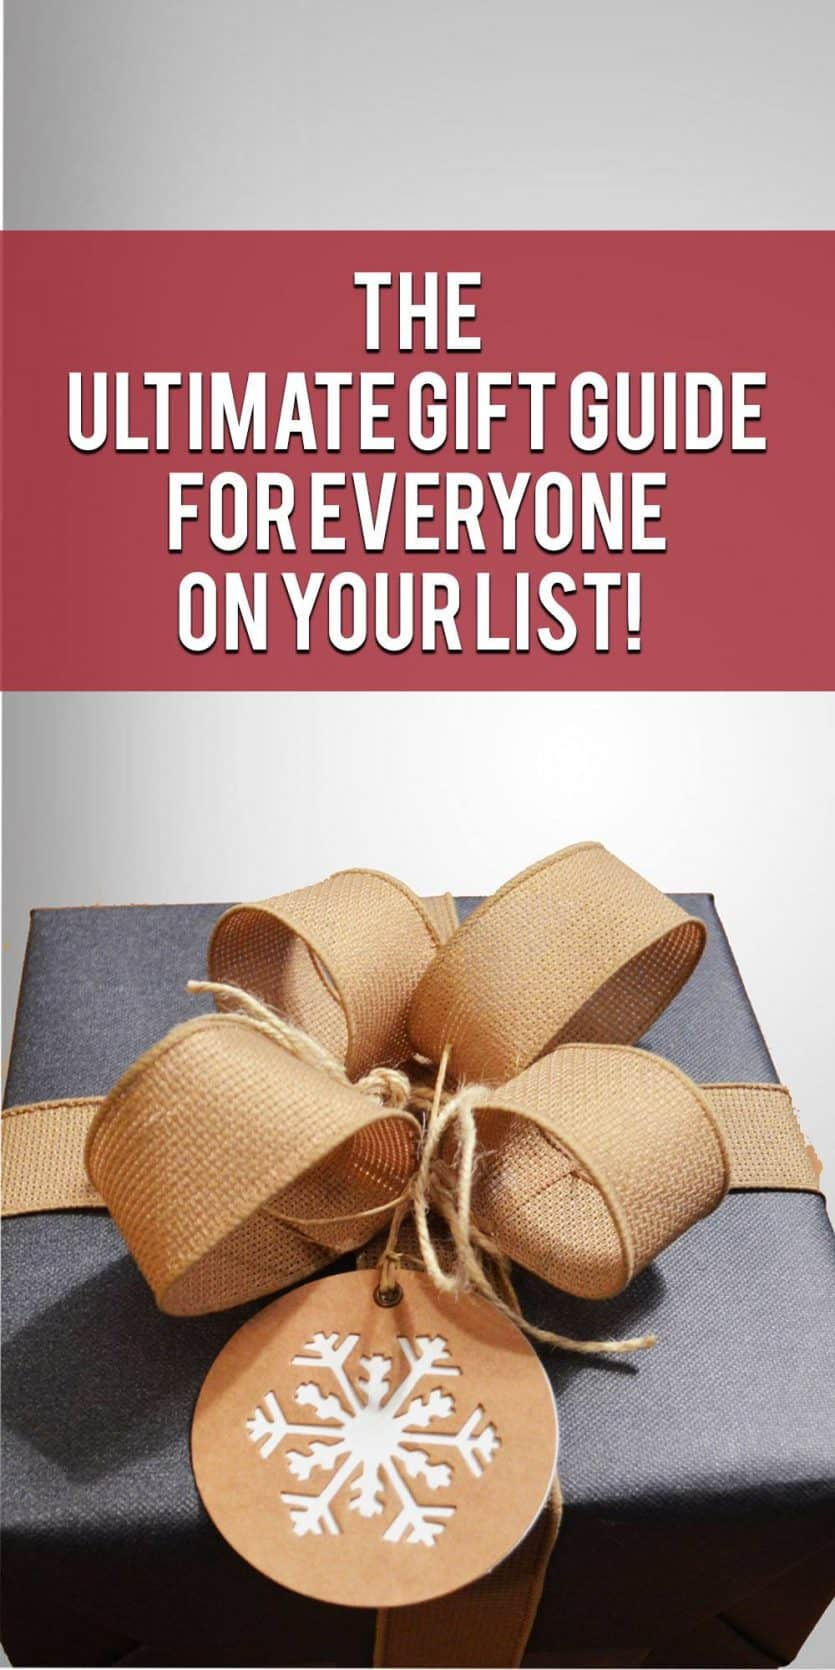 All kinds of great gift ideas for yourself or someone on your holiday shopping list this year. Check it out and make your shopping easier this year! Pin it so you won't forget it!